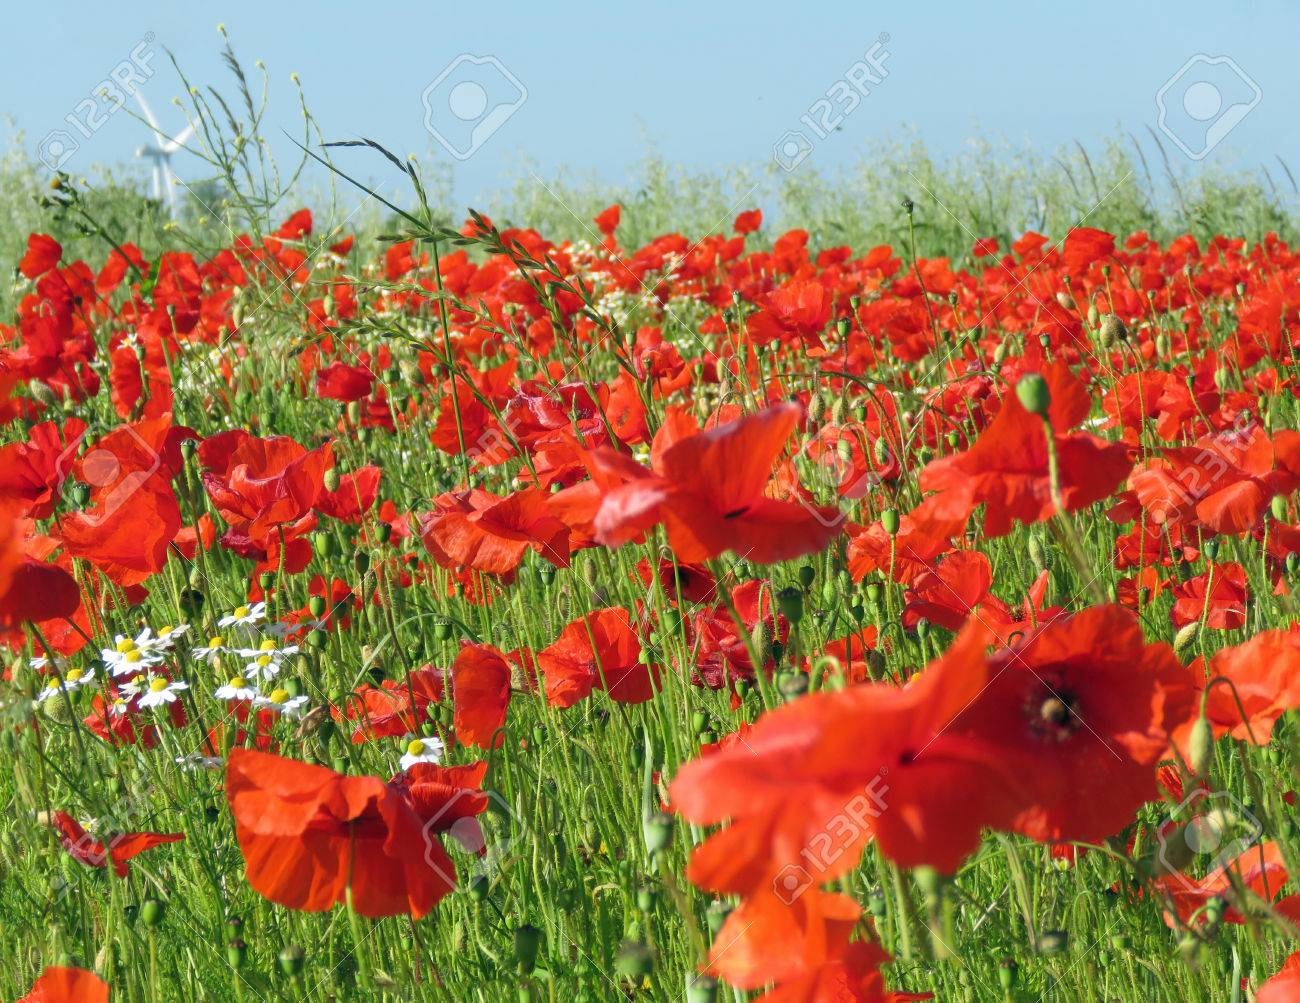 A meadow full of poppies and grasses in rural English countryside Standard-Bild - 81835534